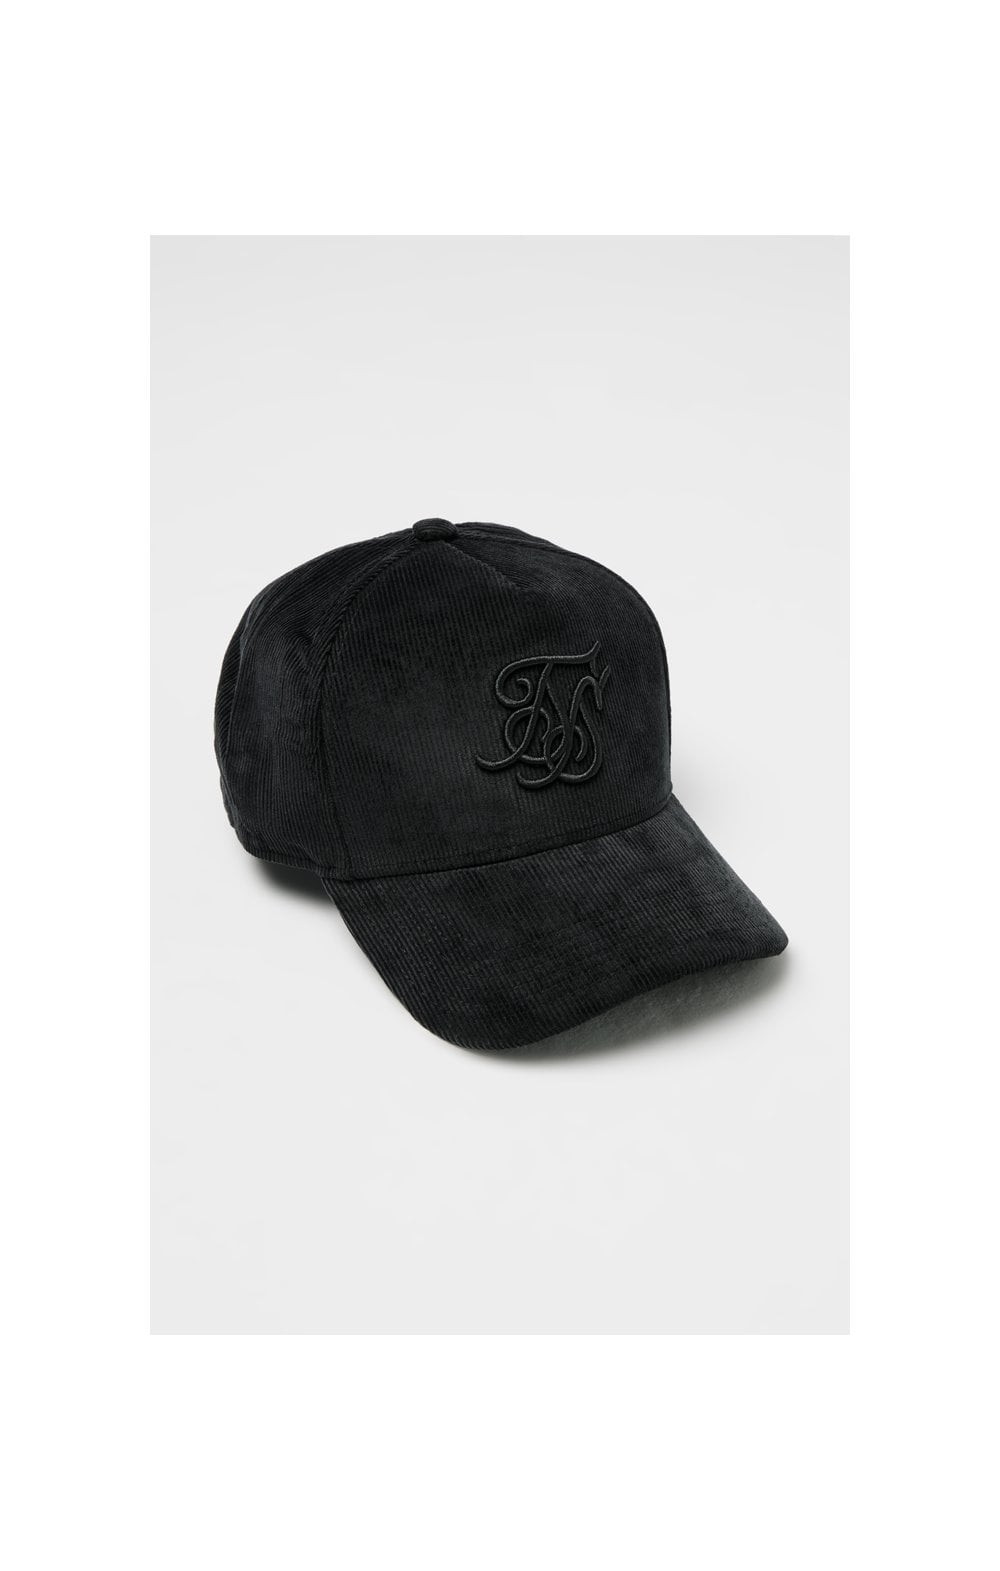 Load image into Gallery viewer, SikSilk Corduroy Full Trucker - Black (2)